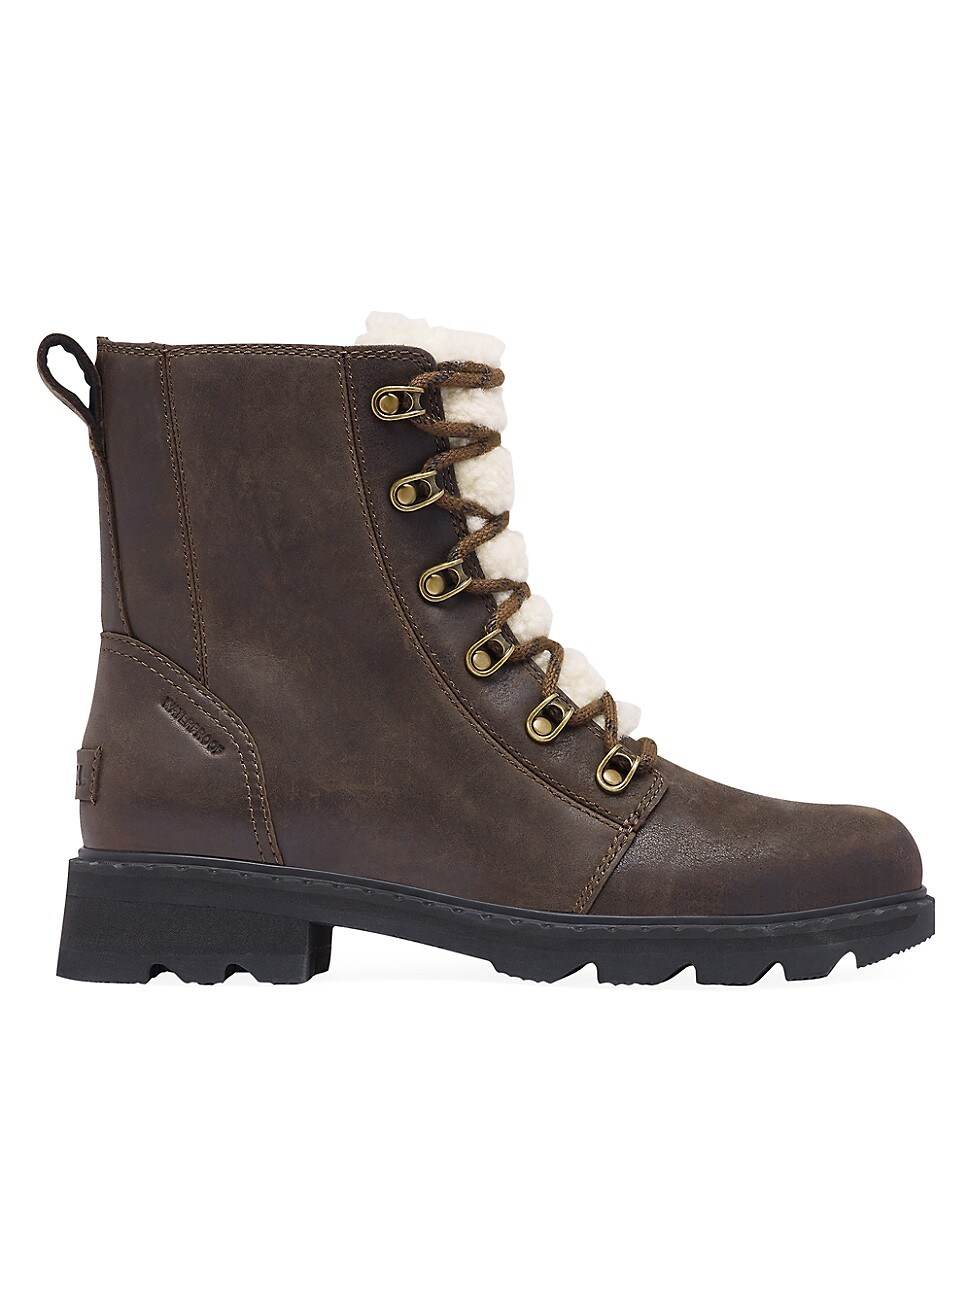 Sorel WOMEN'S LENNOX SHEARLING-LINED LEATHER COMBAT BOOTS